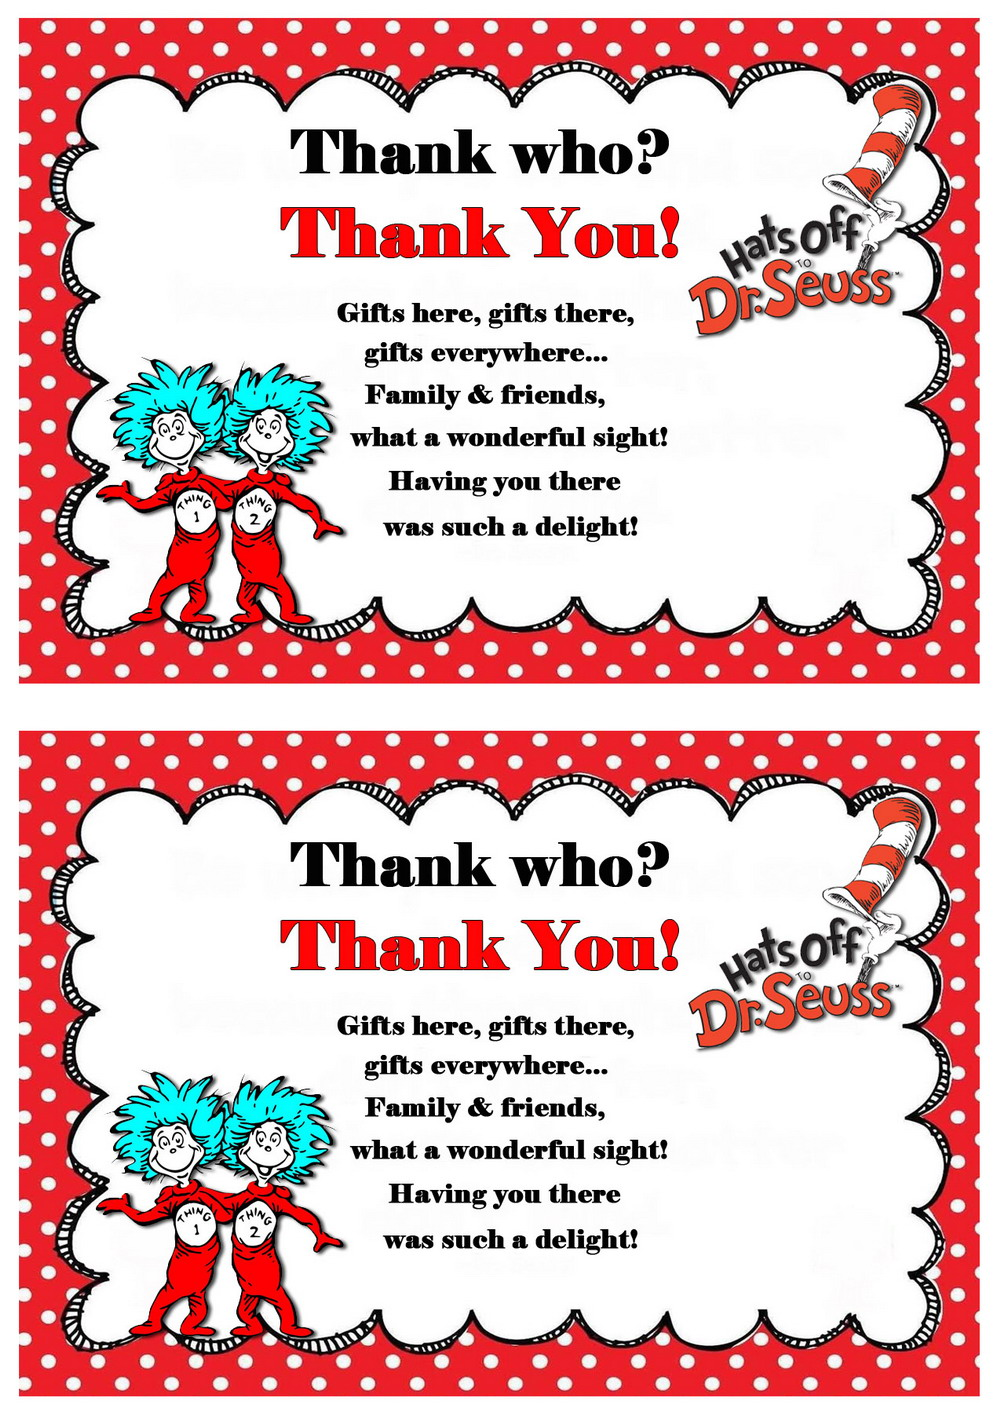 Dr Seuss Thank you Cards Birthday Printable